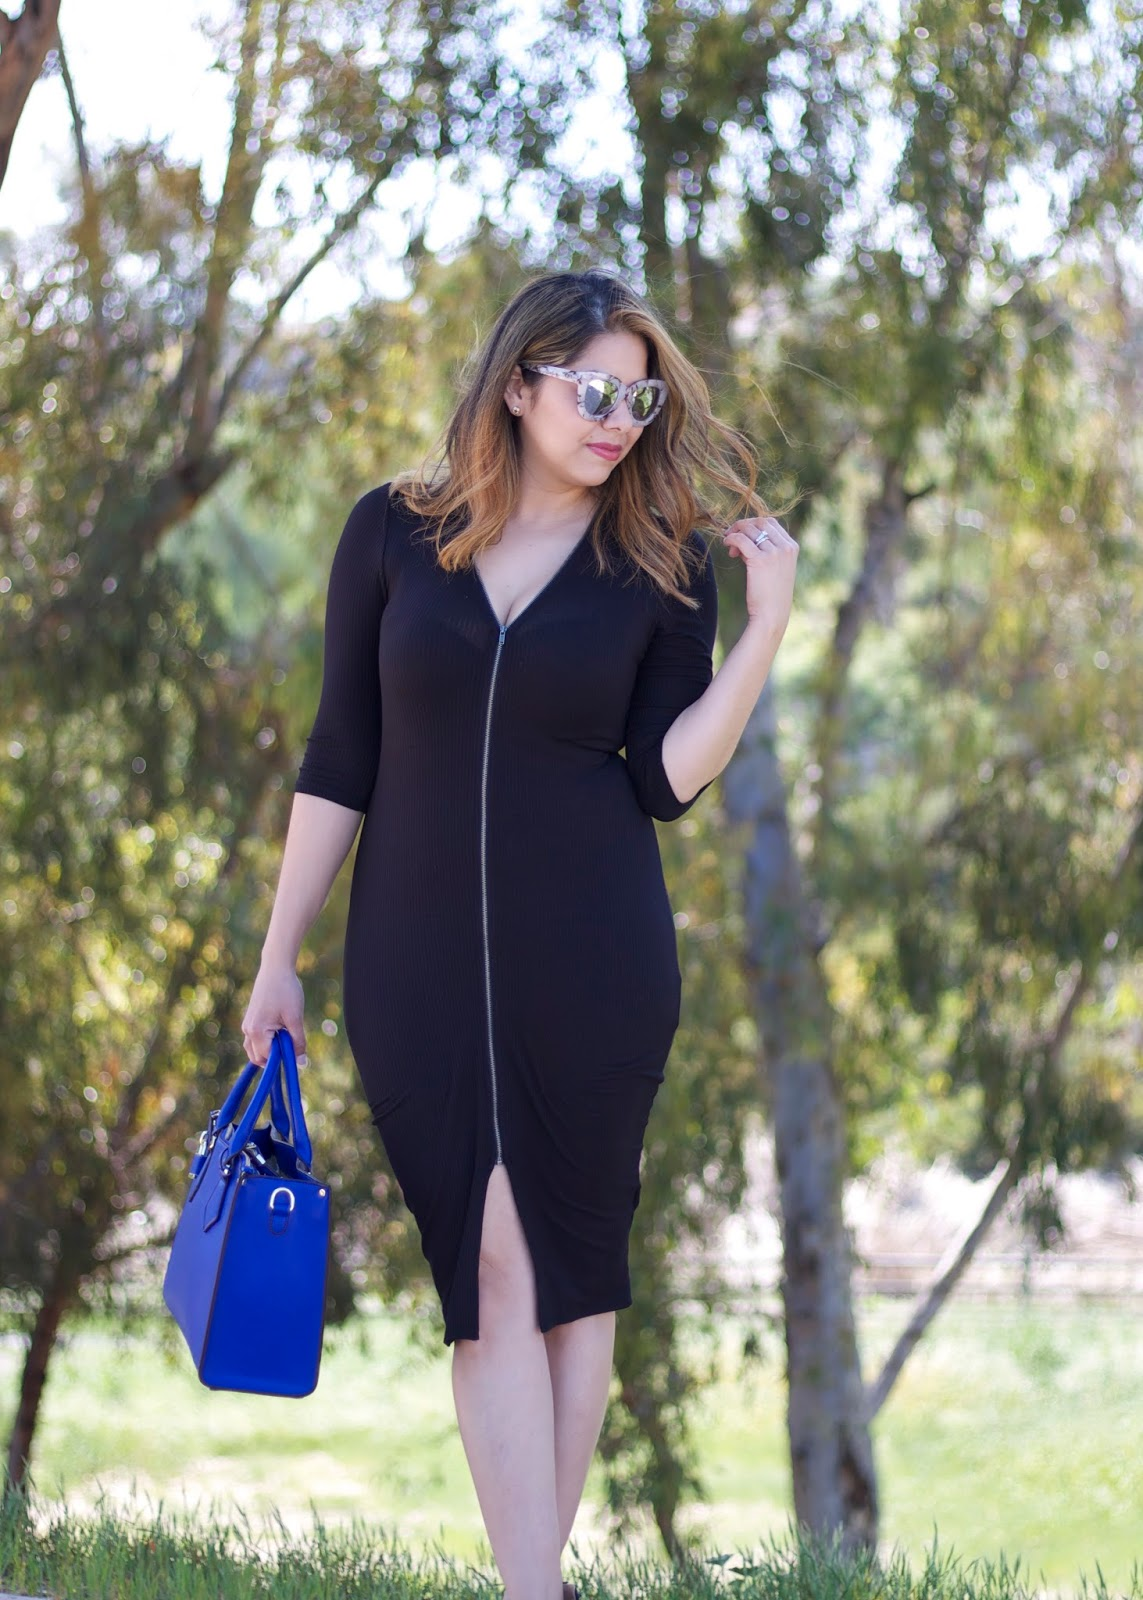 Black Midi Dress with blue, bold blue handbag, galian handbag, quay sunglasses